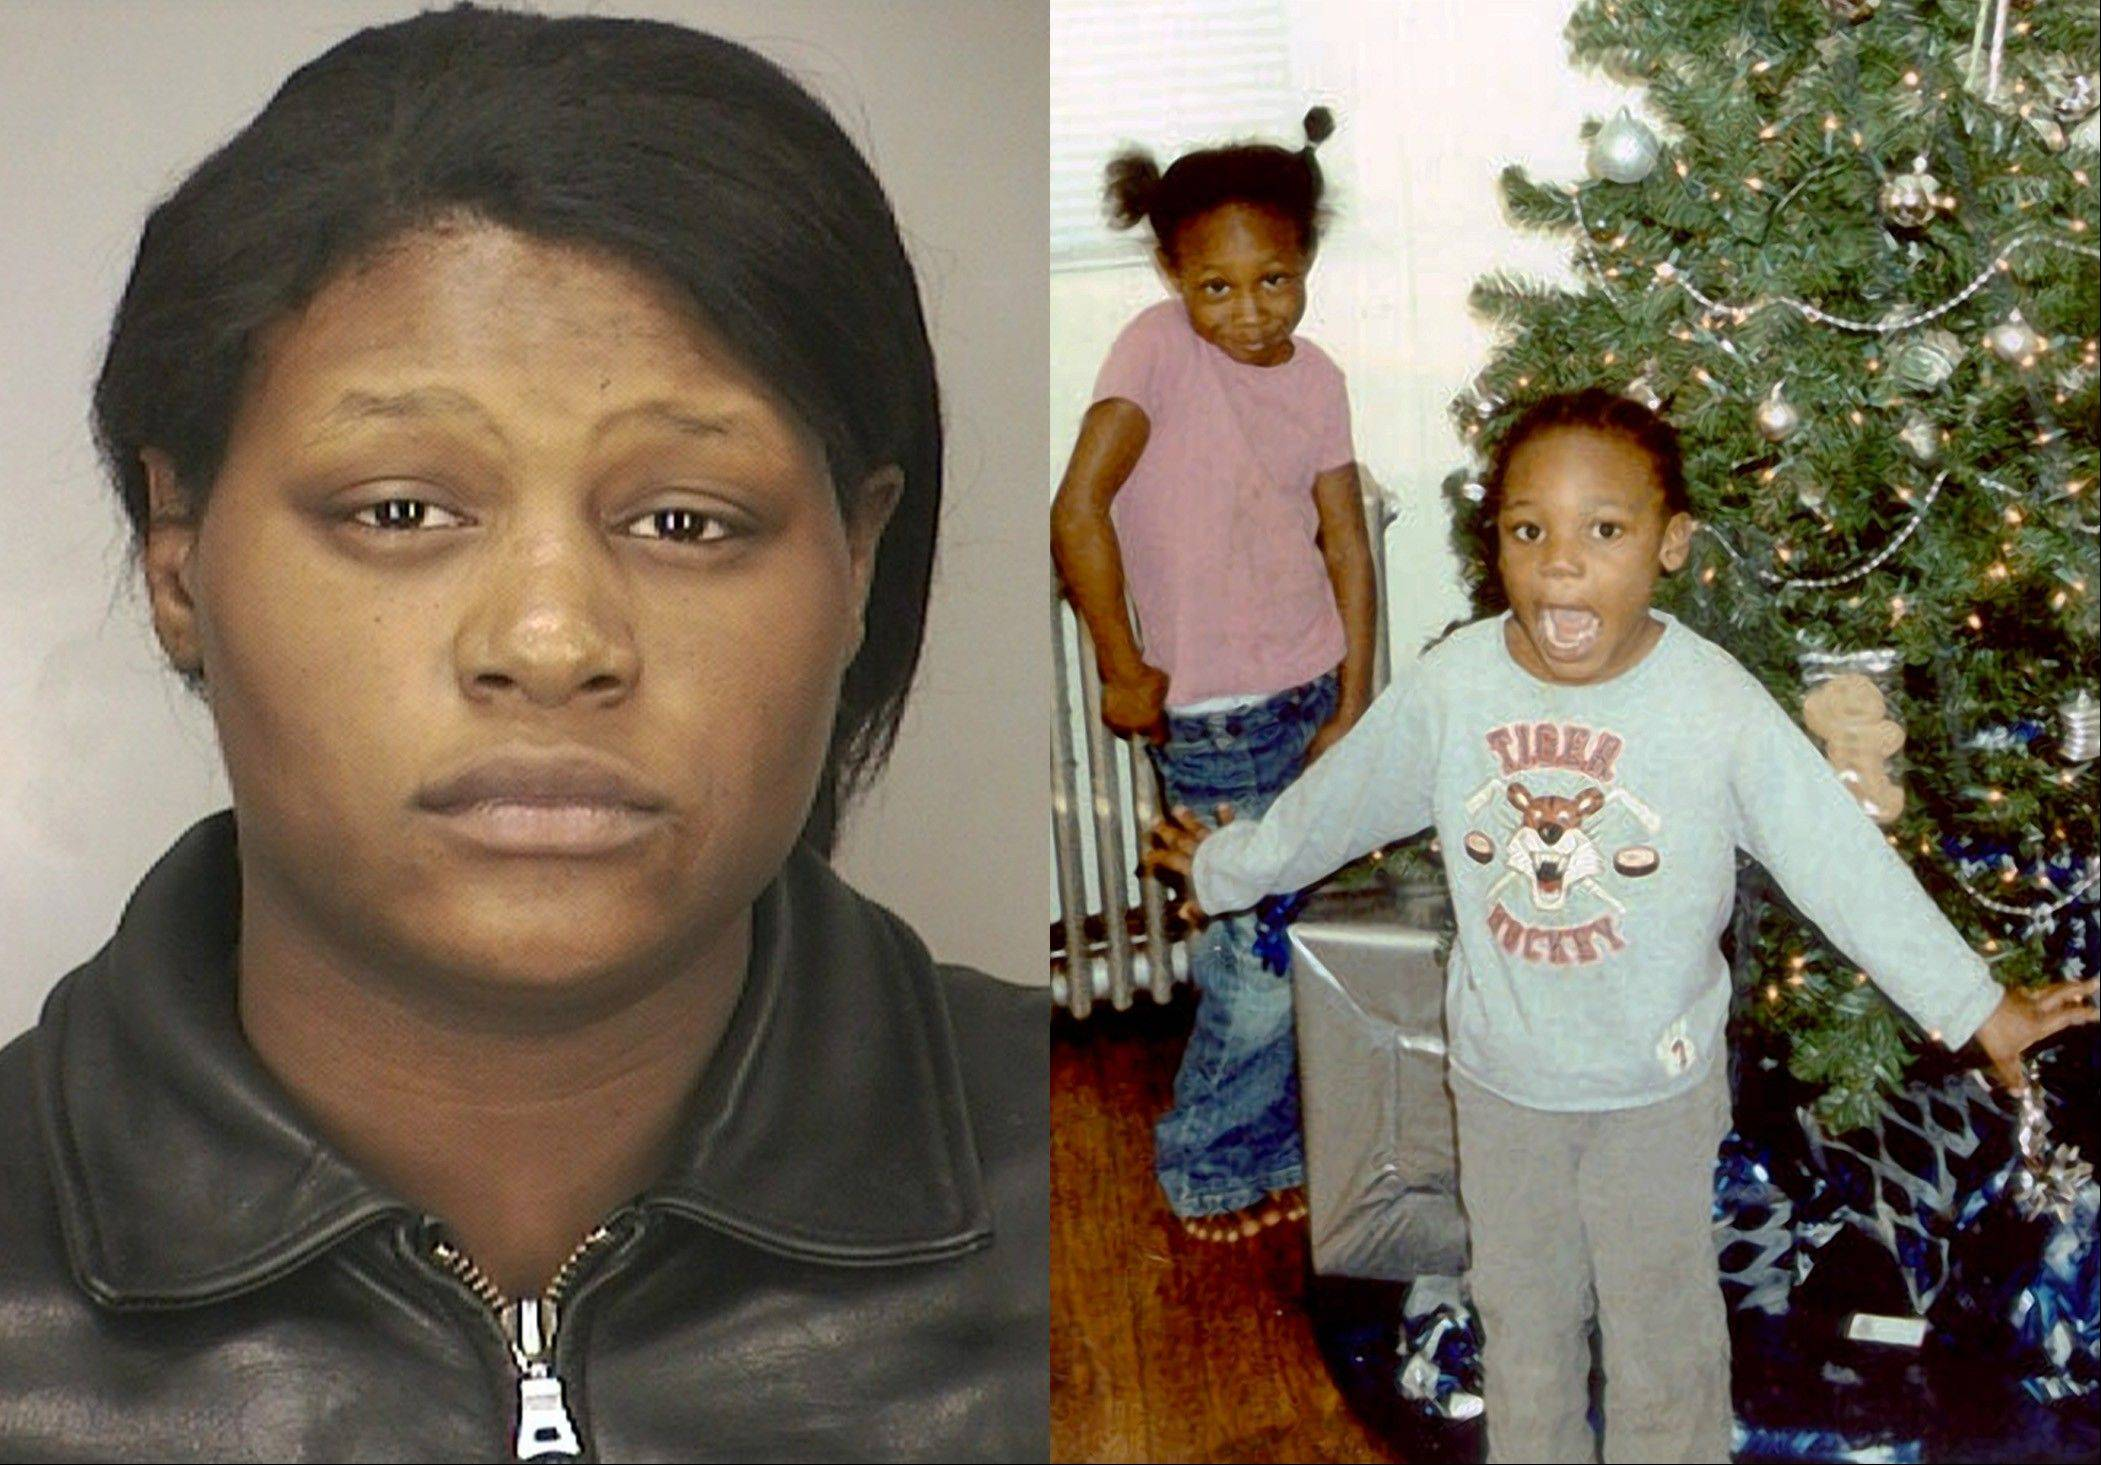 This combination of file photos provided by the Nassau County Police Department shows Leatrice Brewer in 2003, and two of her children, Jewell Ward, and Michael Demesyeux, right. Legal experts say the case of Brewer, who drowned her three children in a bathtub and is now seeking to cash in, could succeed because of a loophole. Since Leatrice Brewer was never convicted -- instead found not guilty by reason of mental disease -- legal experts say she could make a plausible case to receive some of her children's $350,000 estate.